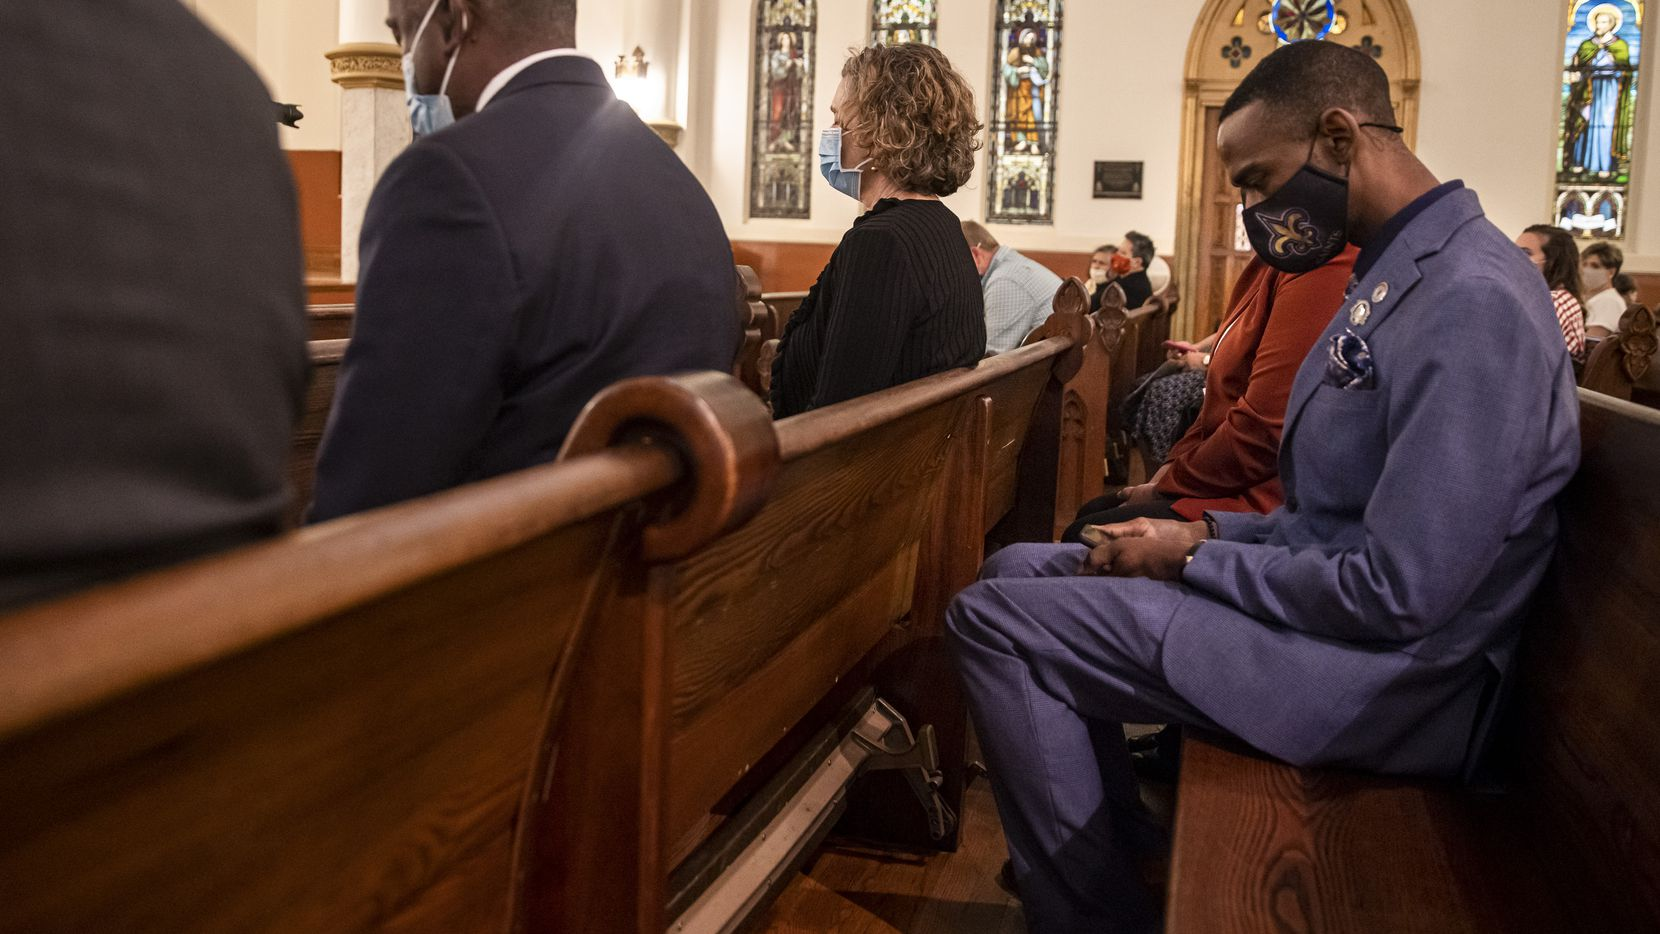 Darrell Herbert bows his head in prayer during the Mass for Healing held on the one-year anniversary of George Floyd's death on Tuesday, May 25, 2021, at Cathedral Guadalupe in Dallas. New research shows that DFW residents see a role for Christian communities in caring for people in need of help, but less support for religious involvement in systemic reforms. (Lynda M. González/The Dallas Morning News)